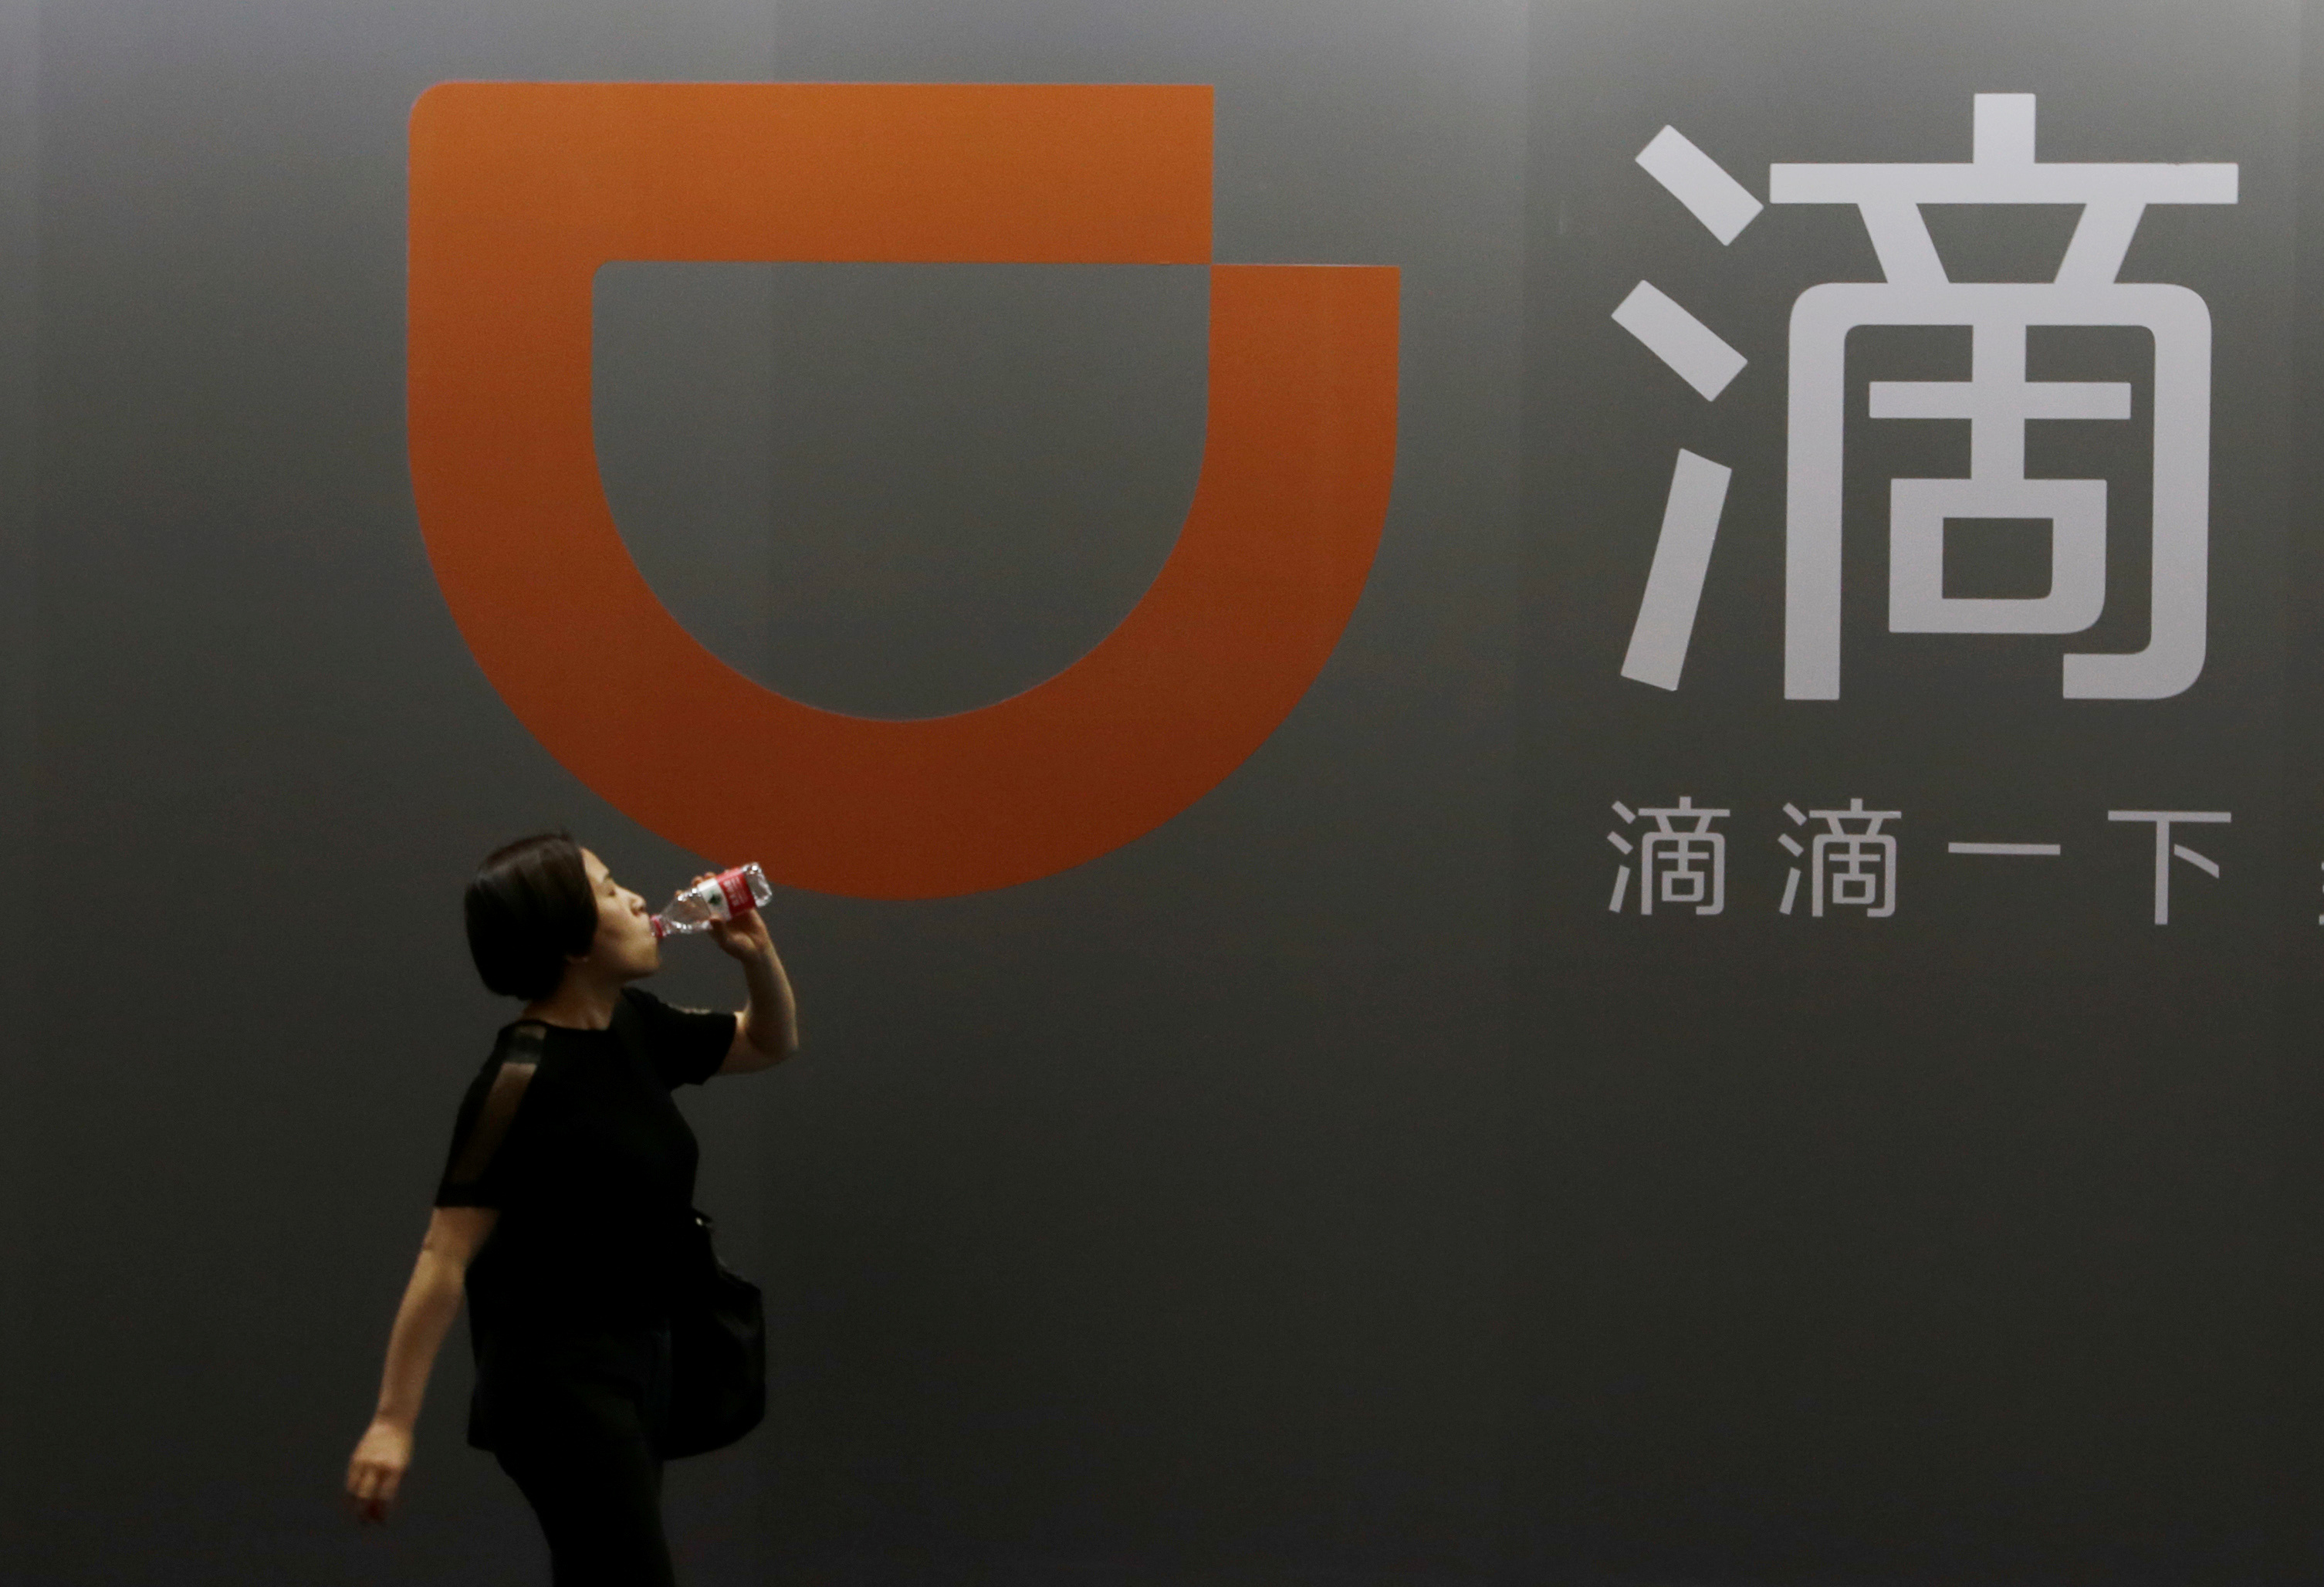 A woman walks past Didi Chuxing's booth at the Global Mobile Internet Conference (GMIC) 2017 in Beijing, China